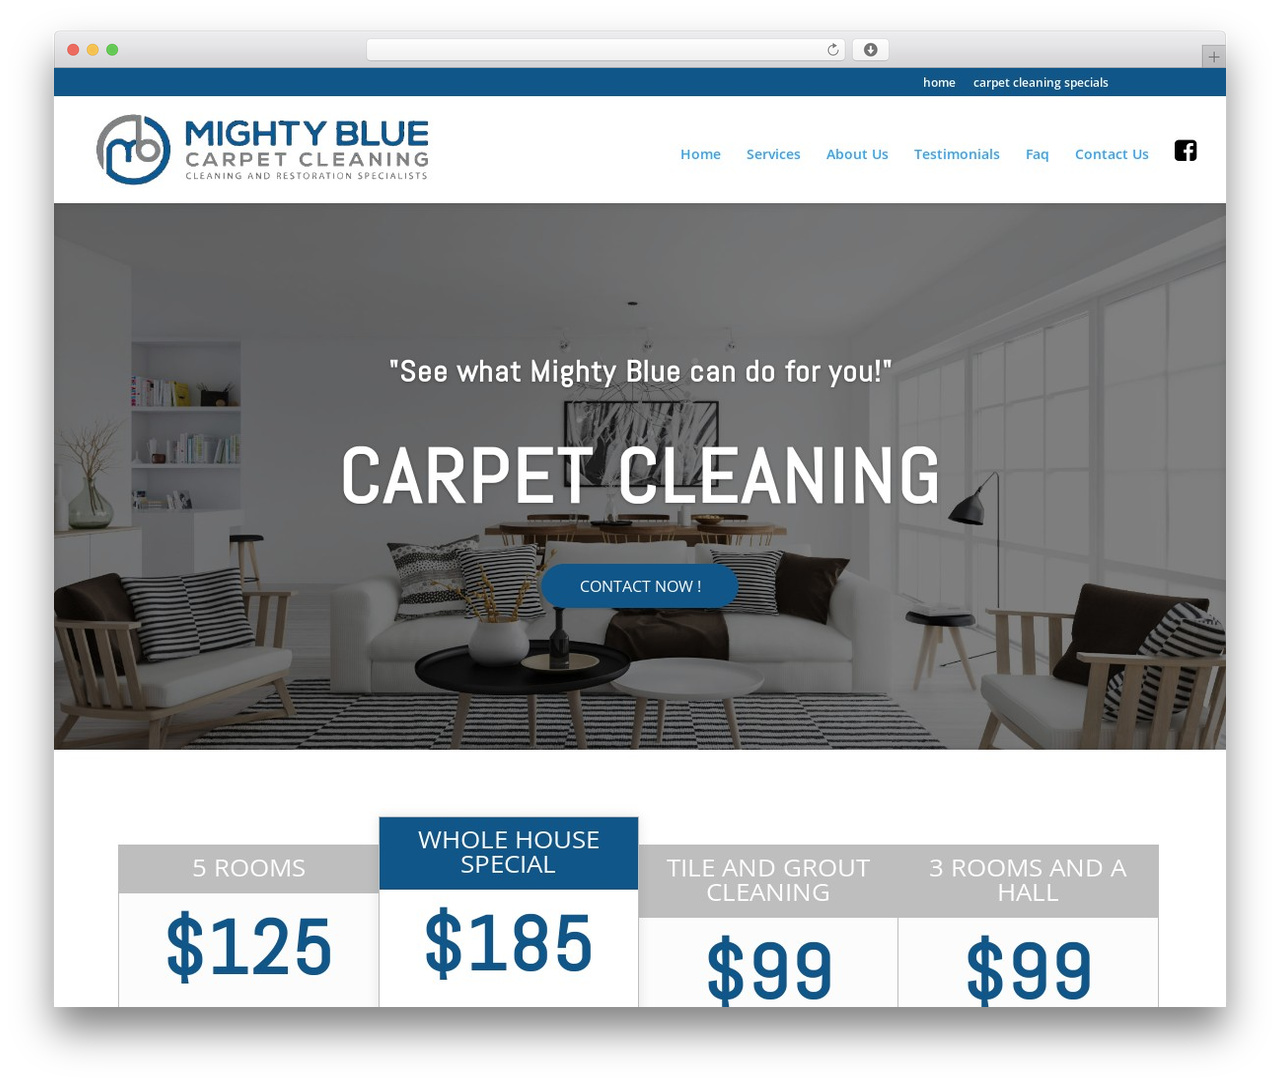 Divi WordPress theme - mightybluecarpetcleaning.com